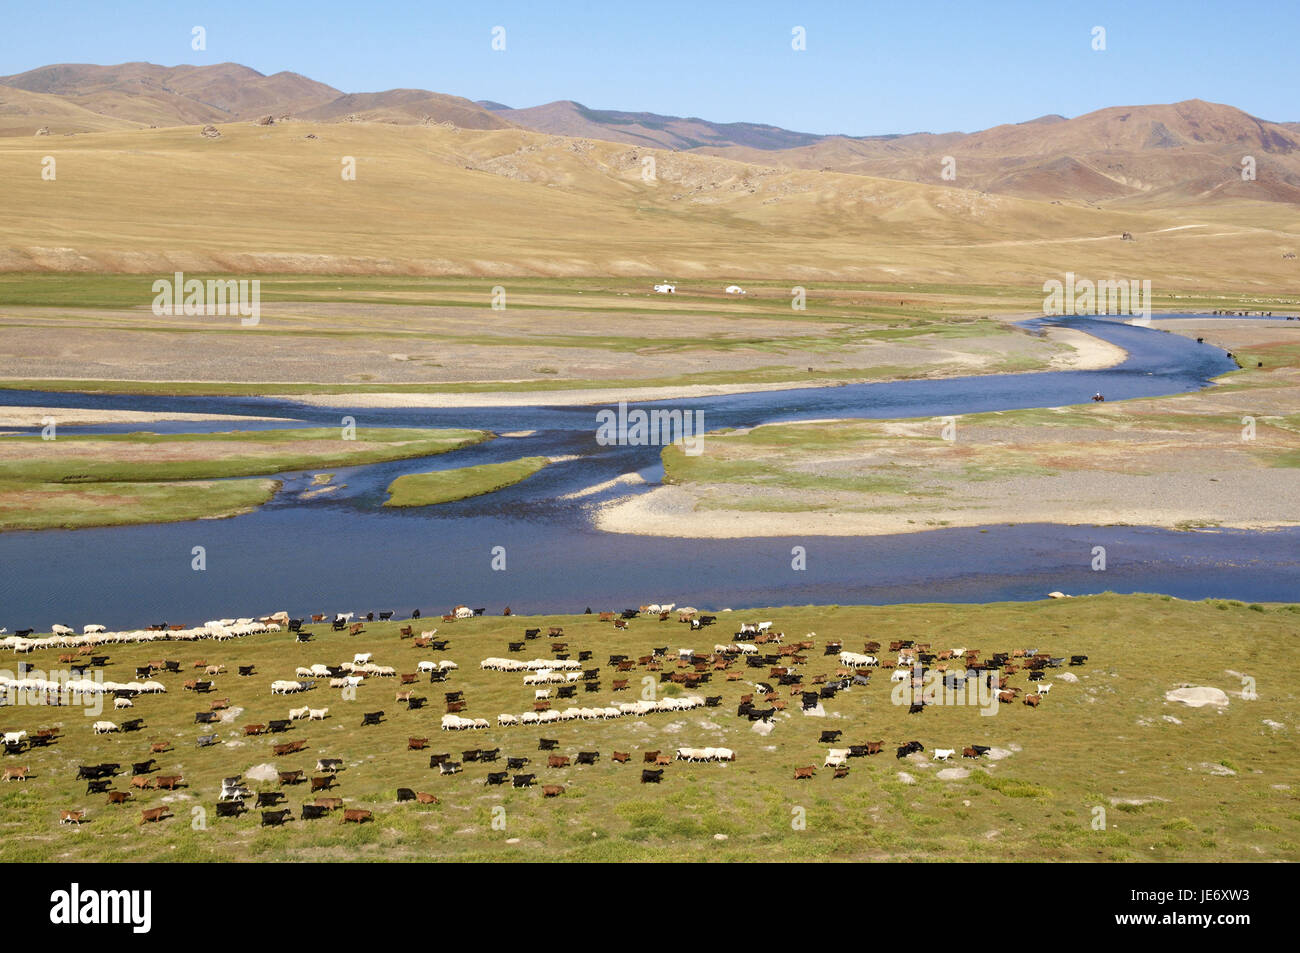 Mongolia, Central Asia, Ovorkhangai province, historical Orkhon valley, UNESCO world heritage, Orkhon flux, flock - Stock Image